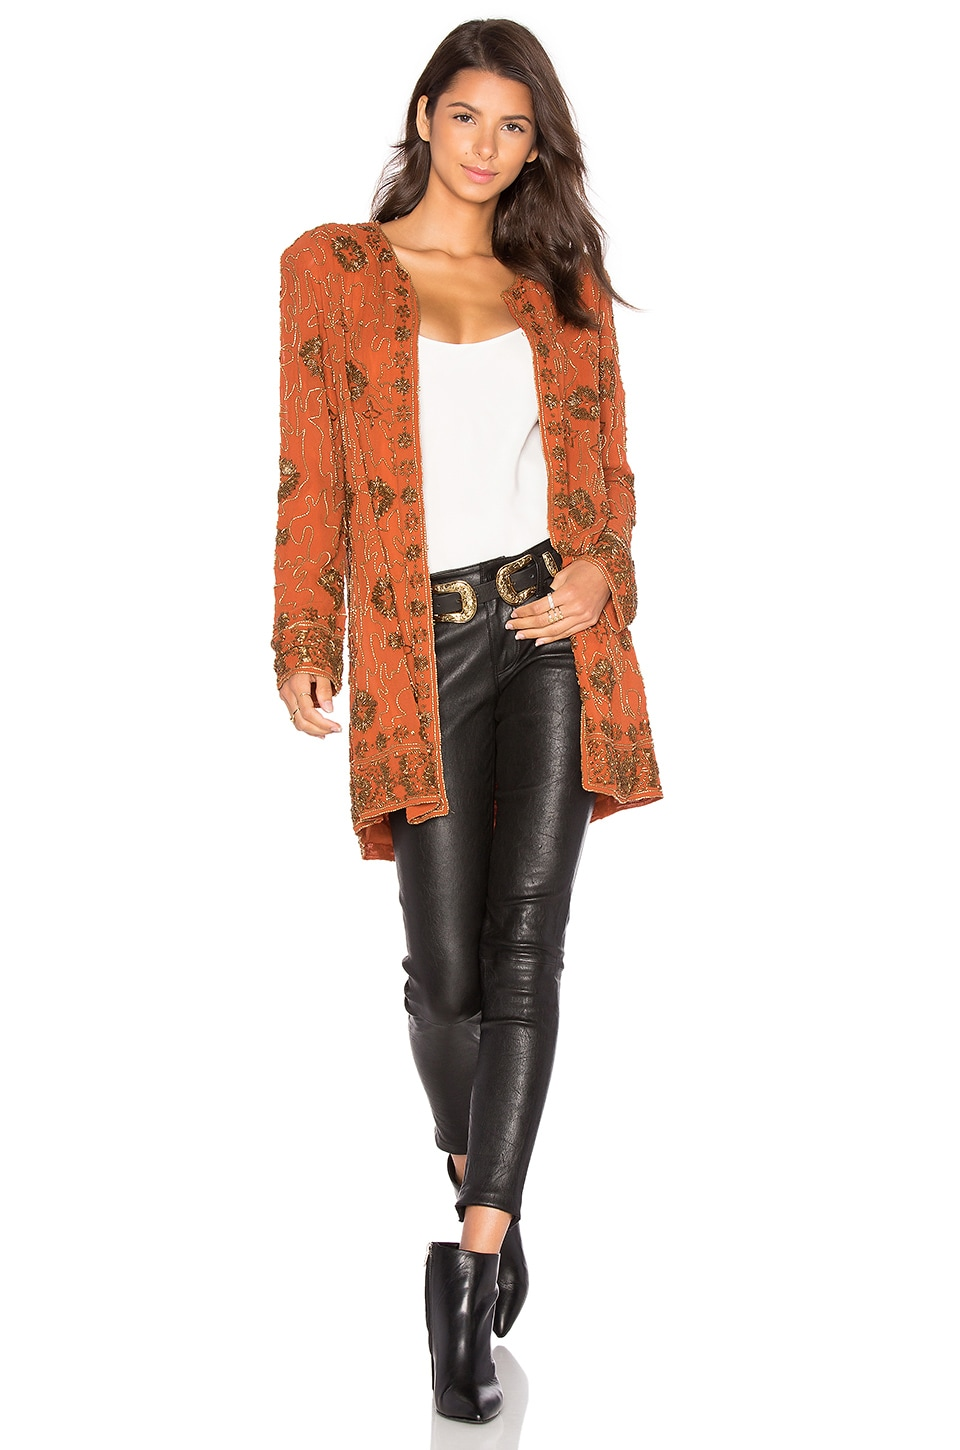 House of Harlow 1960 x REVOLVE Amber Embellished Coat in Burnt Orange